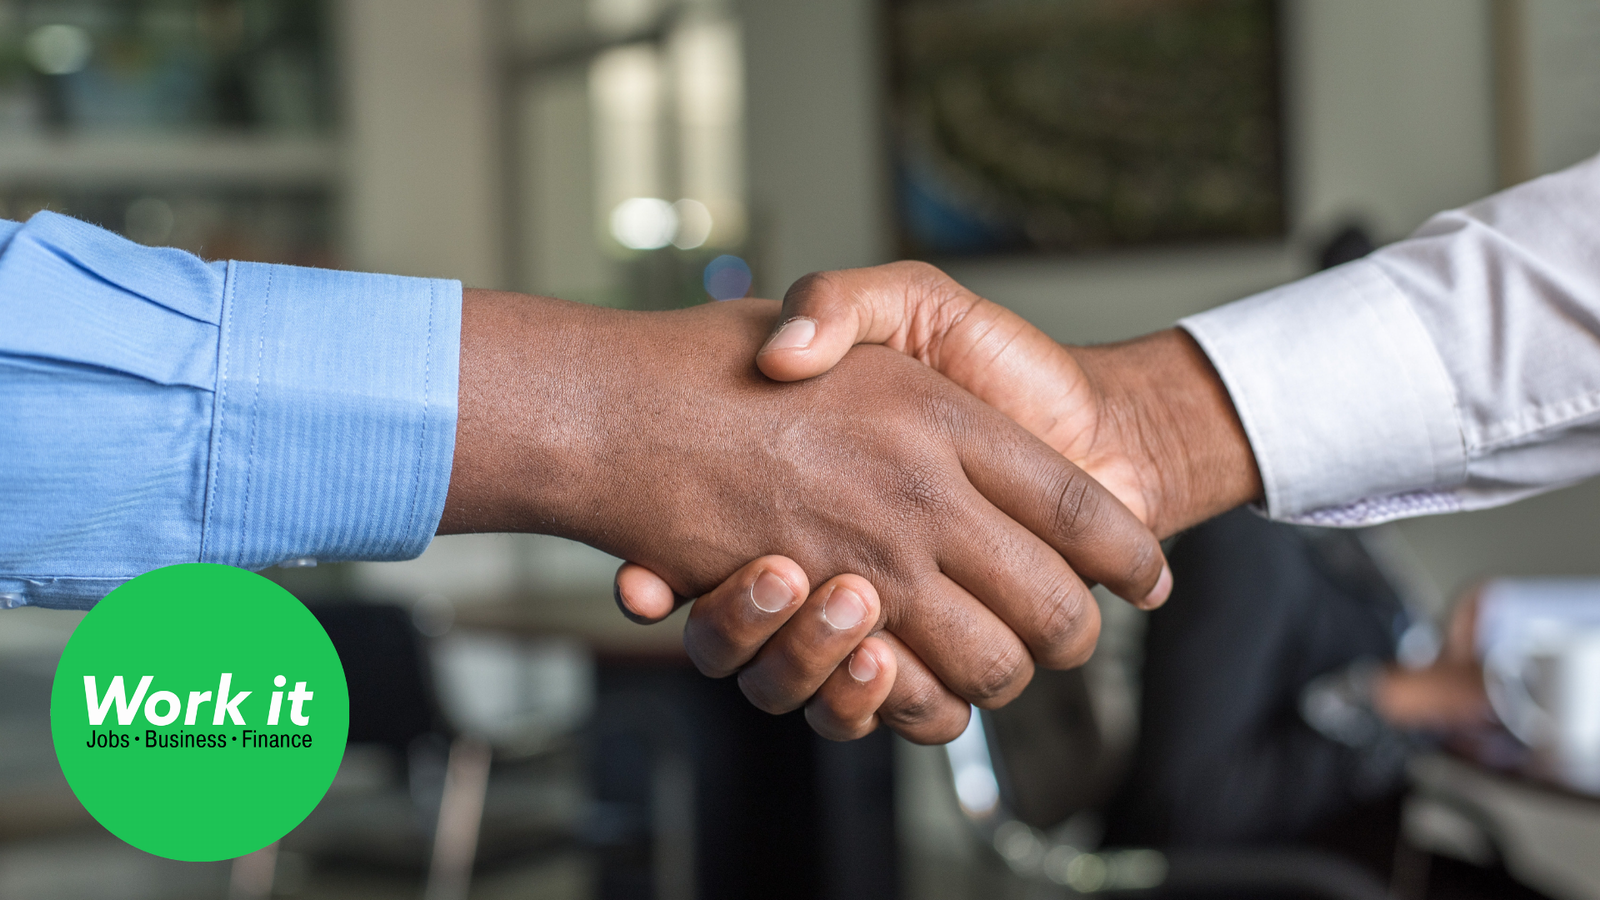 A handshake between two hands; a green logo with the words Work It, Jobs, Business, Finance.